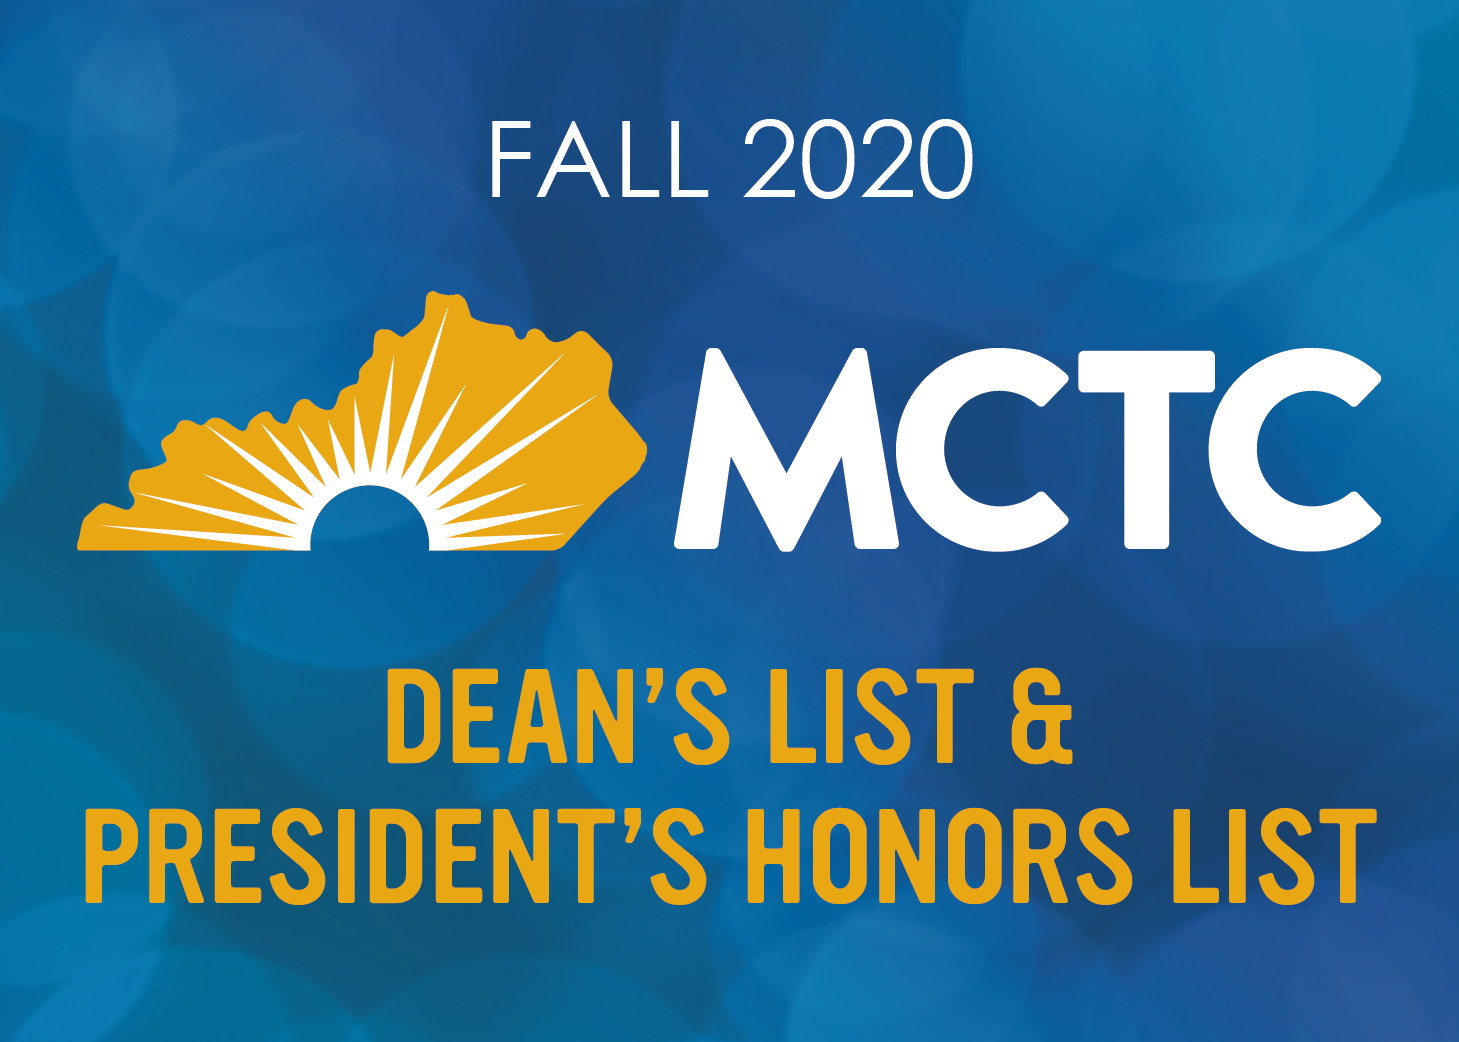 Fall 2020 Dean's and President's List with MCTC Logo